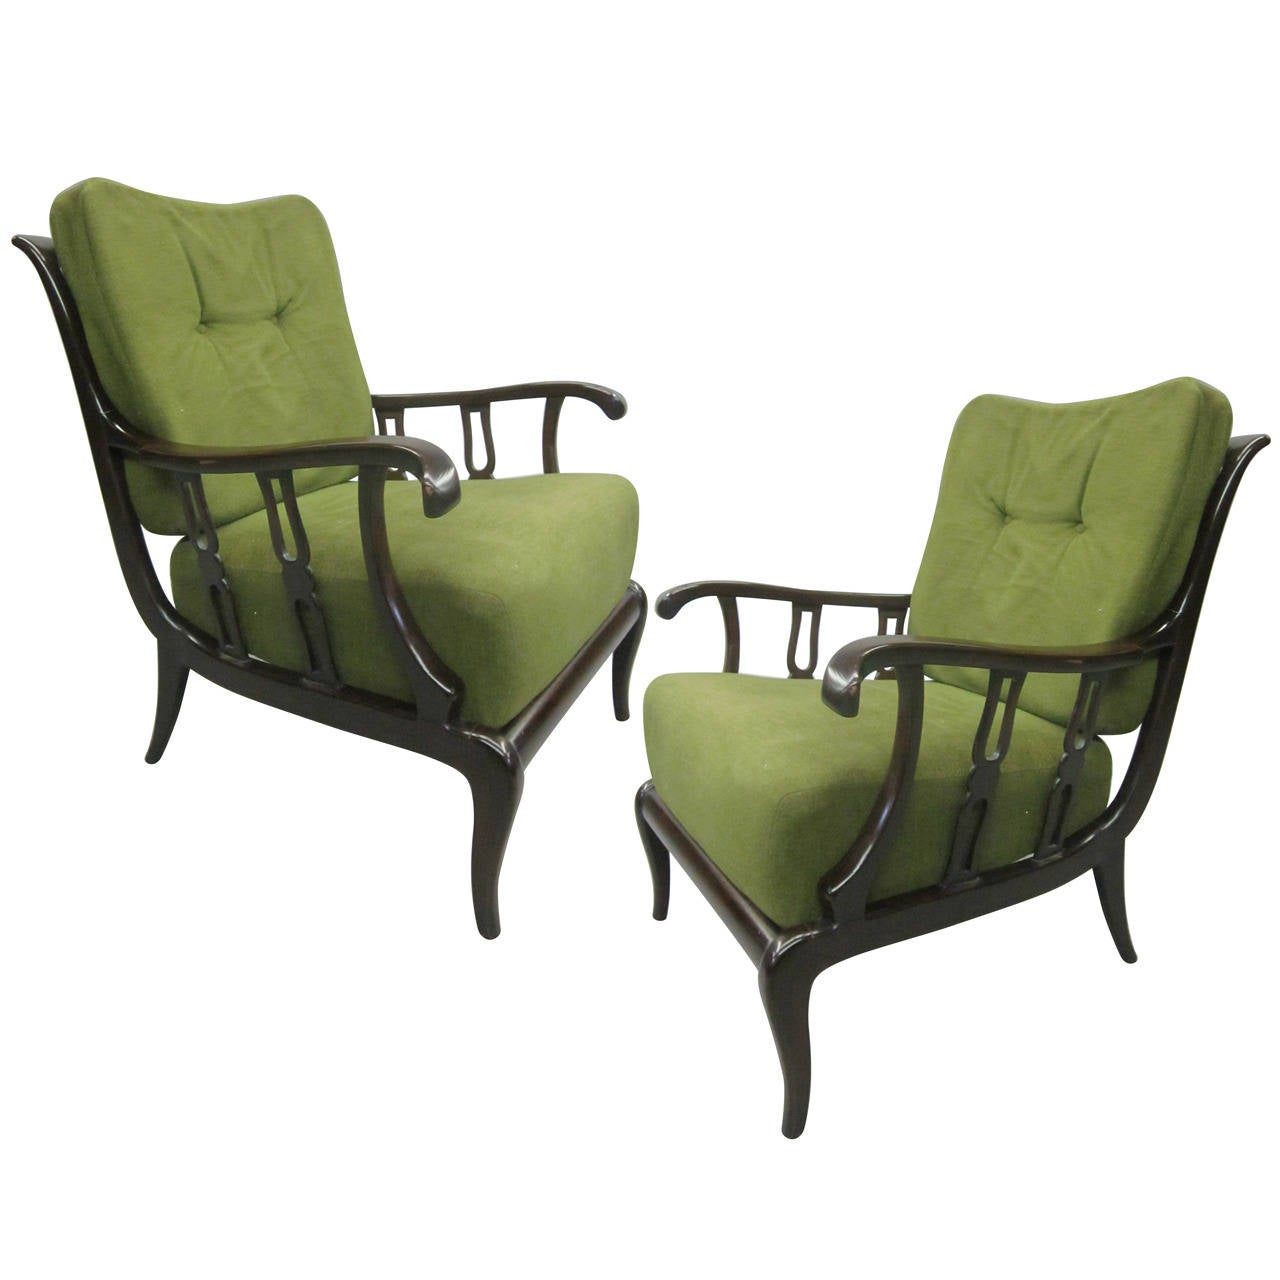 Pair of Italian Mid-Century Modern Neoclassical Lounge Chairs by Paolo Buffa For Sale